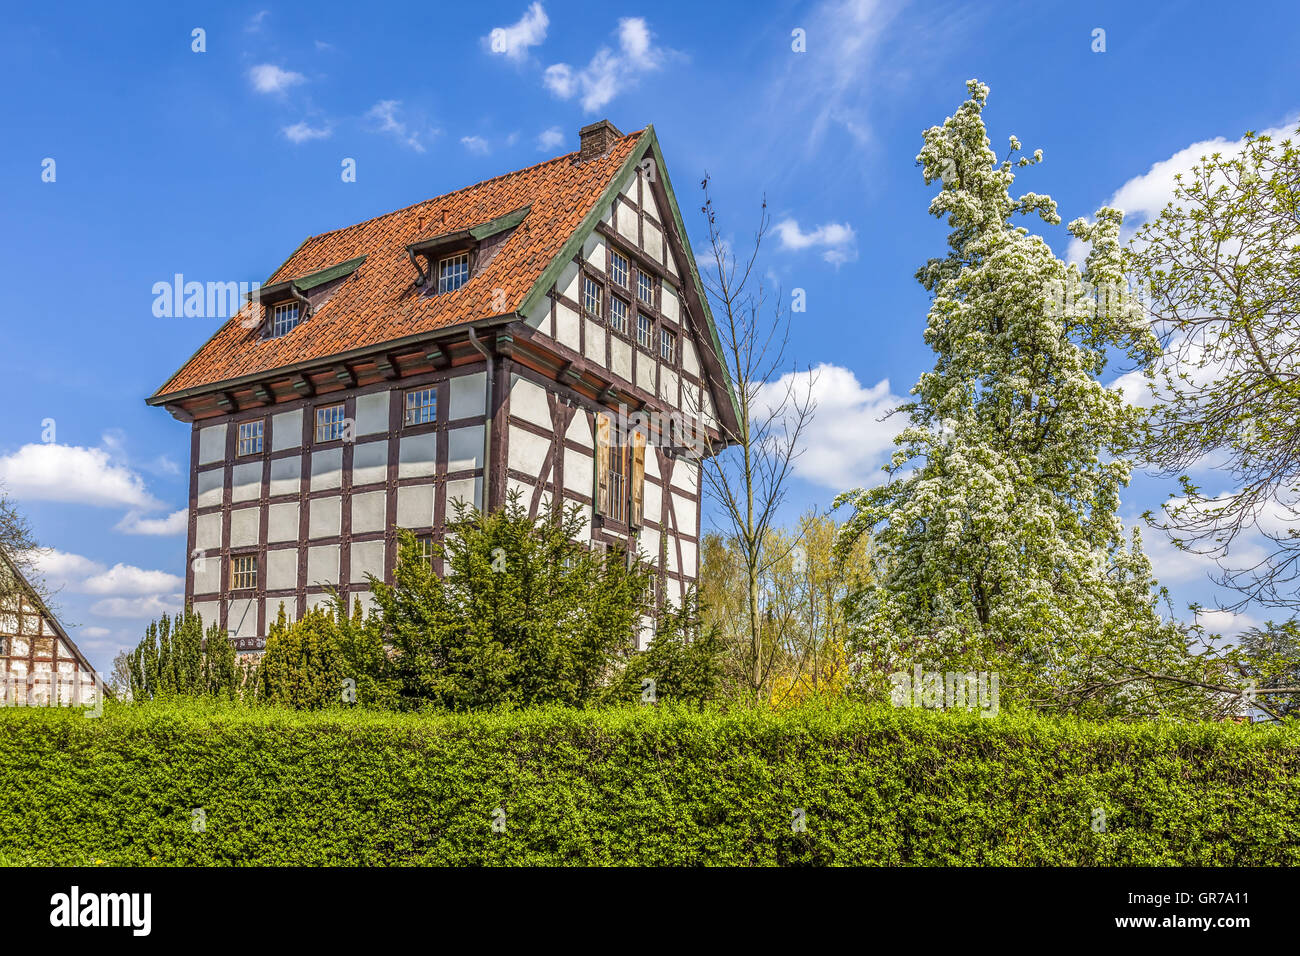 timbered house in bad essen stock photos timbered house in bad essen stock images alamy. Black Bedroom Furniture Sets. Home Design Ideas